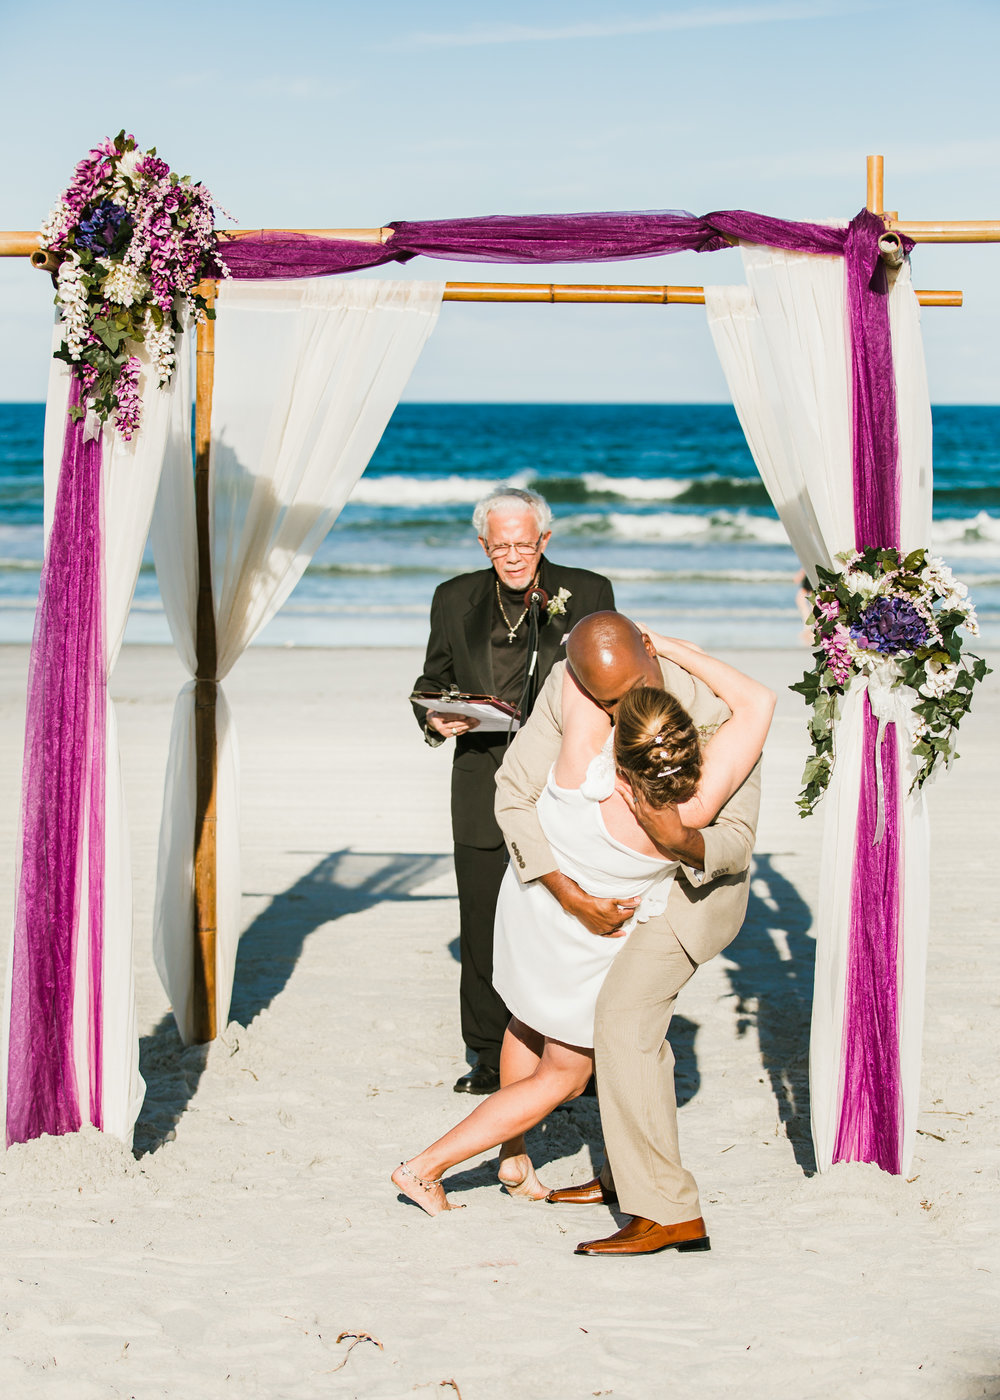 Violets & Seastars- November Ponce Inlet Wedding - Suzette & Dwight 71.jpg